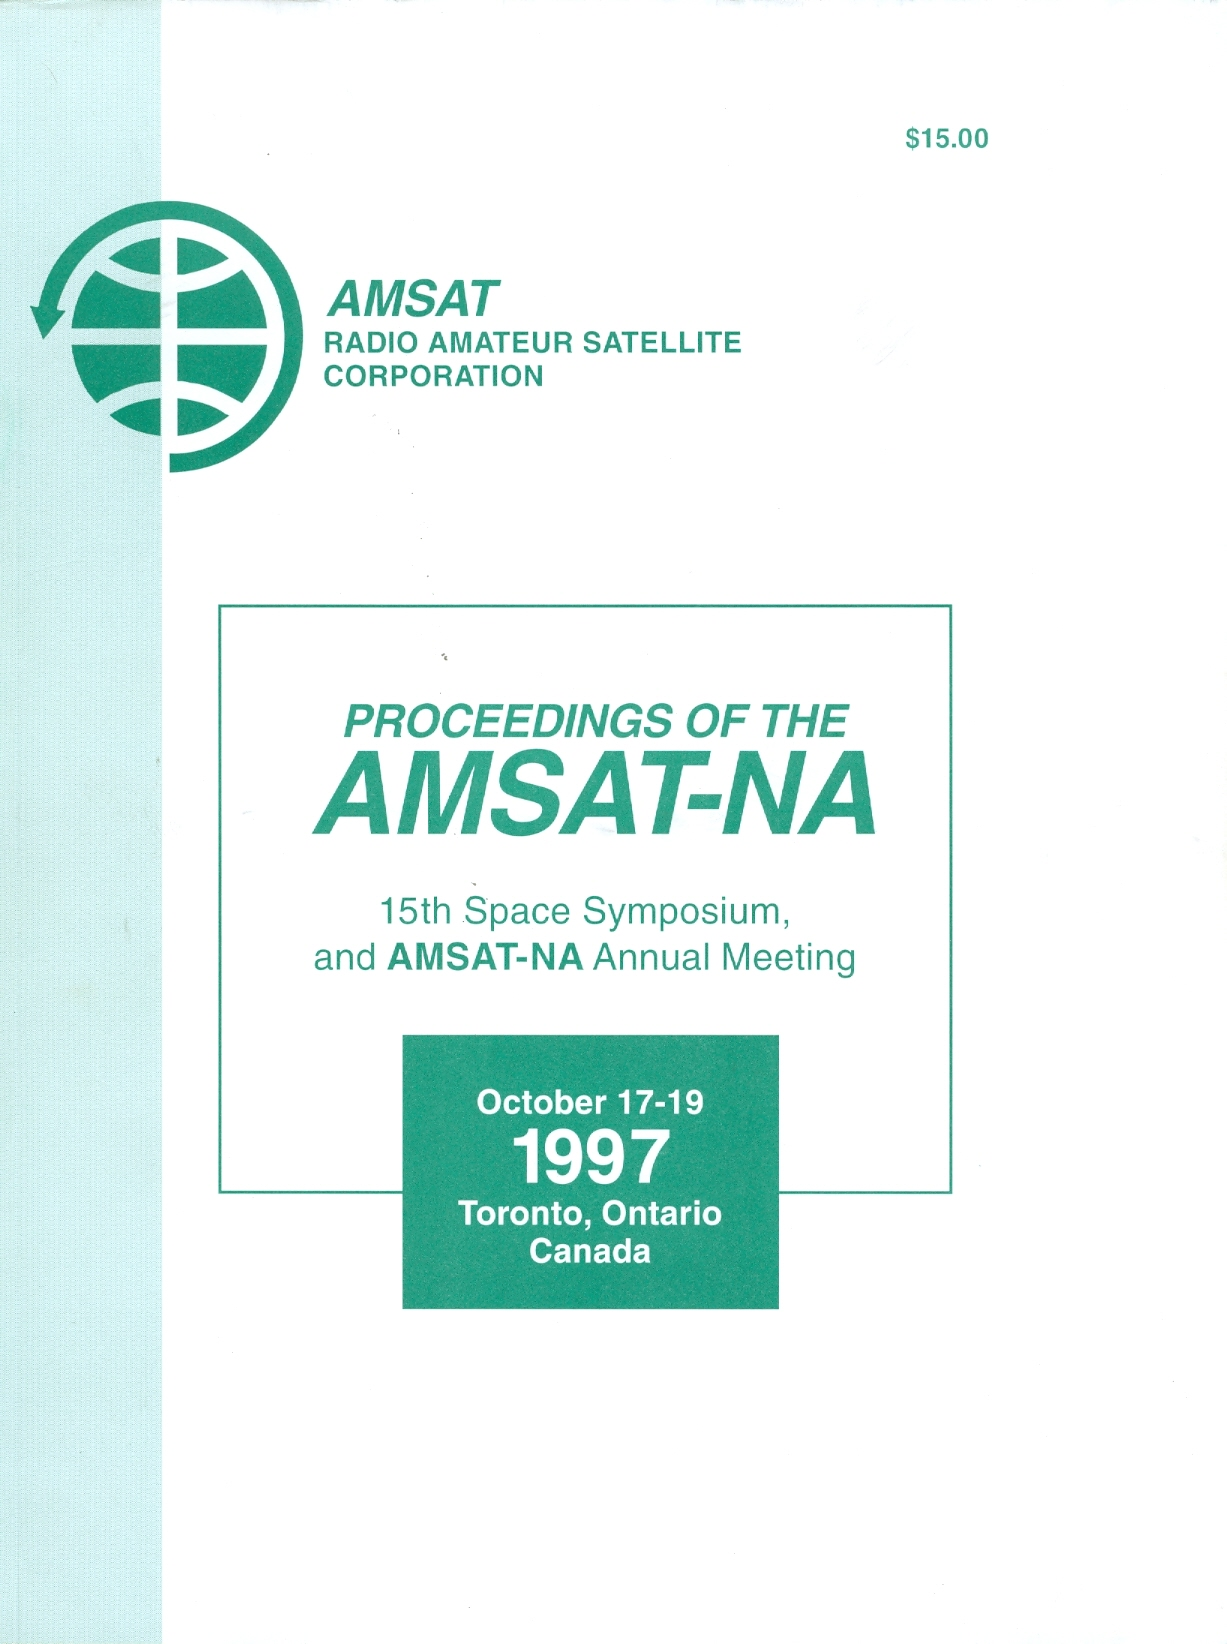 Proceedings of the AMSAT-NA 15th Space Symposium, and AMSAT-NA Annual Meeting